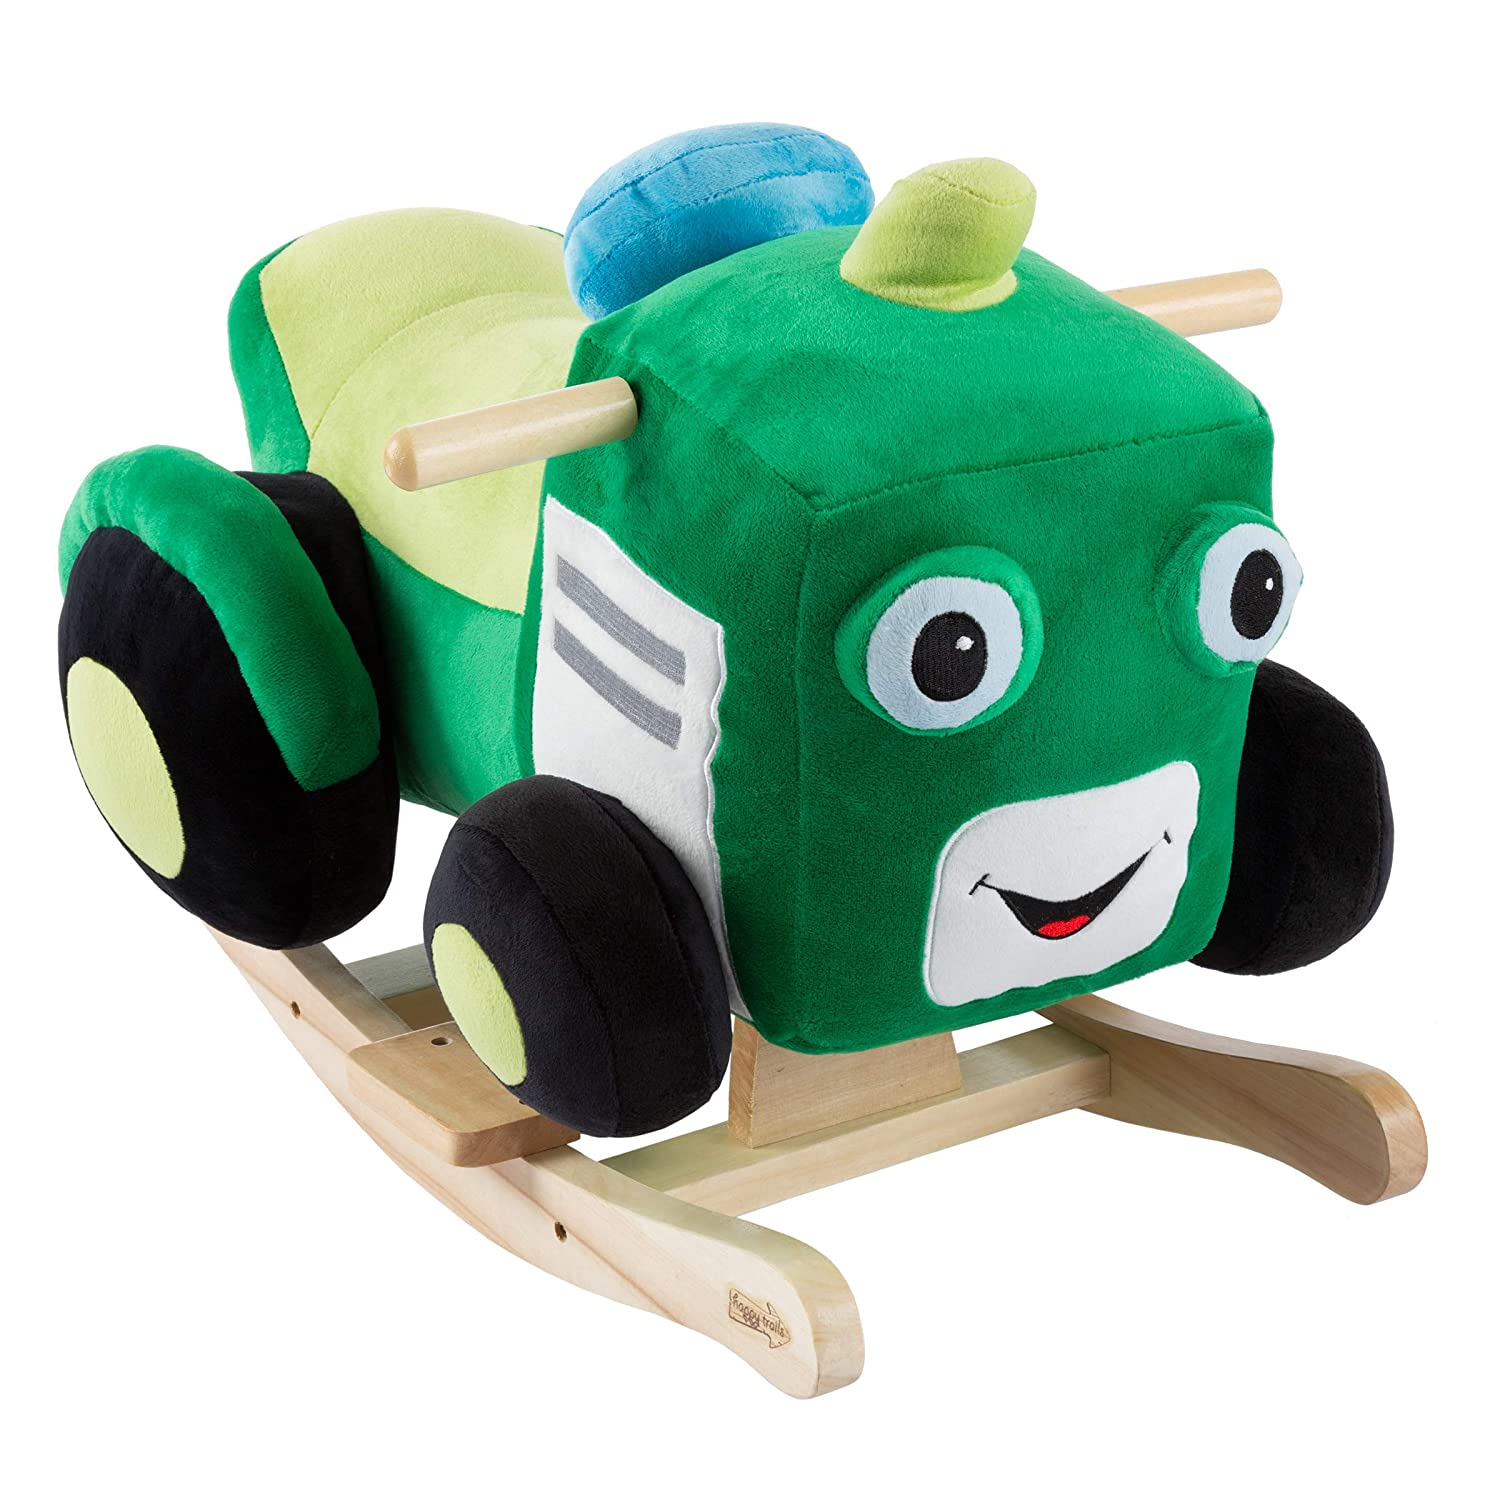 Happy Trails Tractor Rocker Toy-Kids Ride On Soft Fabric Covered Wooden Rocking Plush-Neutral Design for Any Nursery-Fun for Toddler Boys and Girls Trademark 80-670TCT